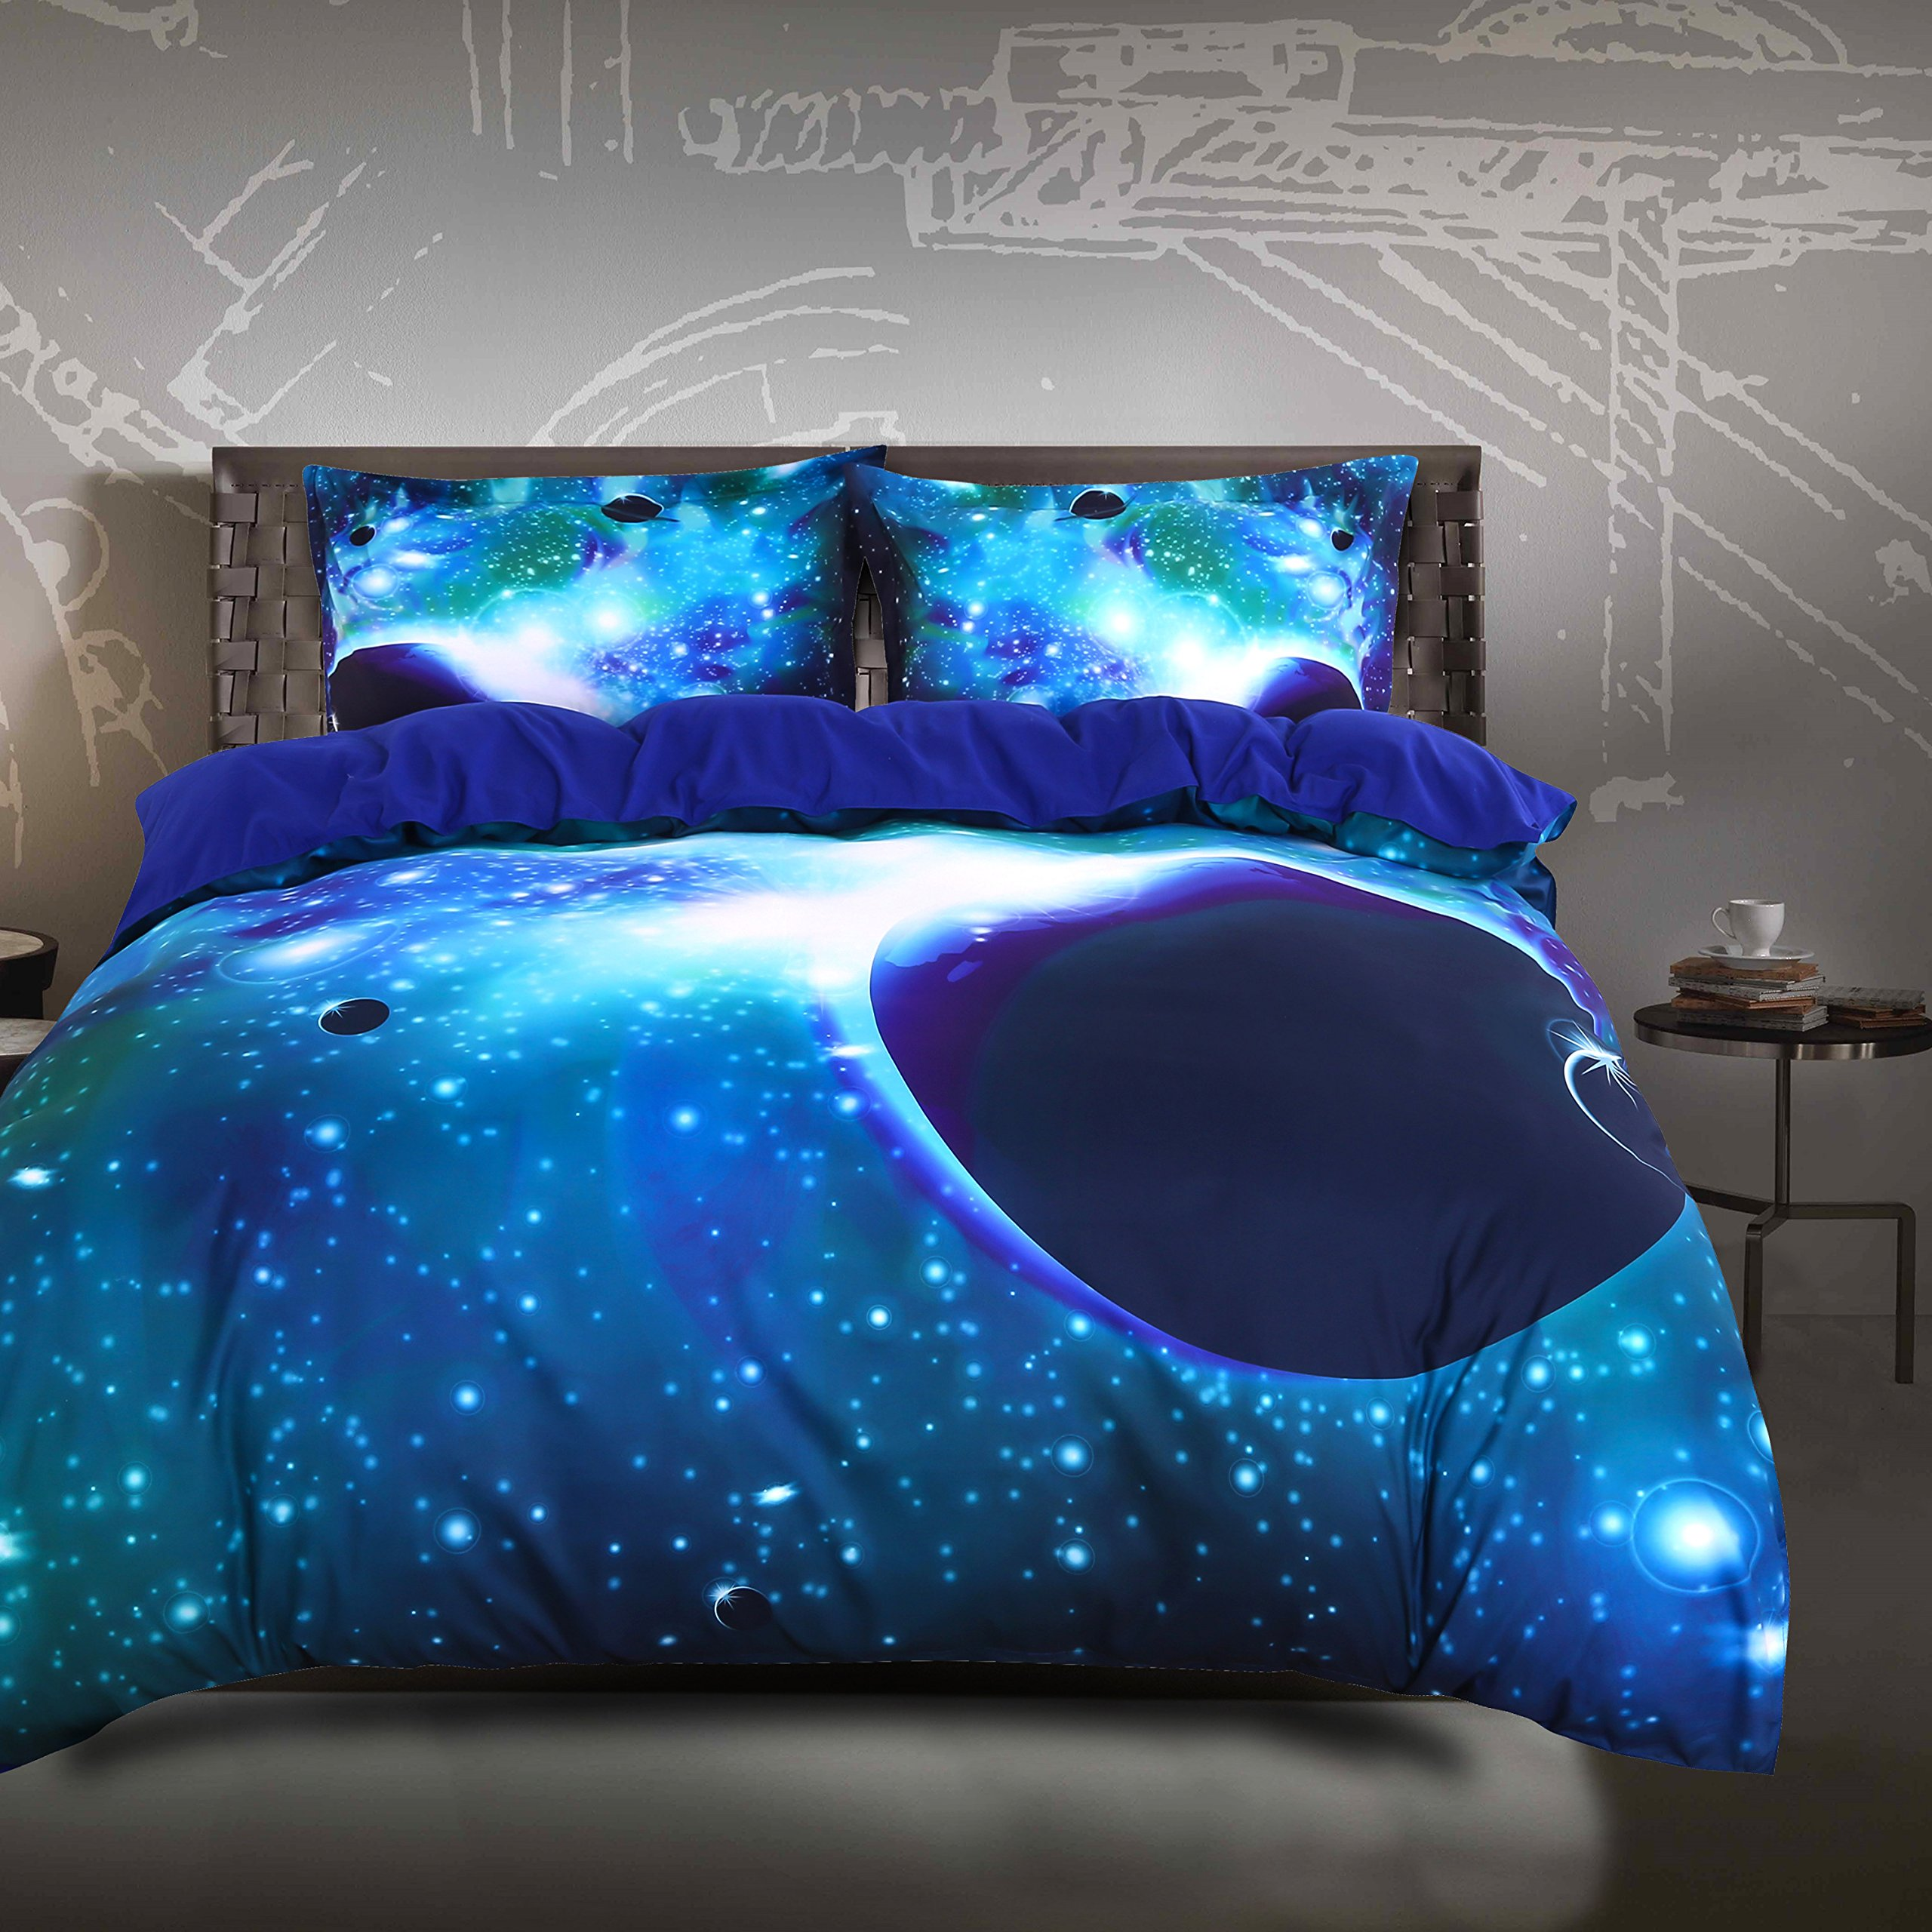 Wowelife Galaxy Sky Bedding Set 3D Printing Cosmos Scene Cotton Quilt Sets 4 Pieces of Flat sheet Dovet Cover and 2 Pillows(Queen, Galaxy-Green)